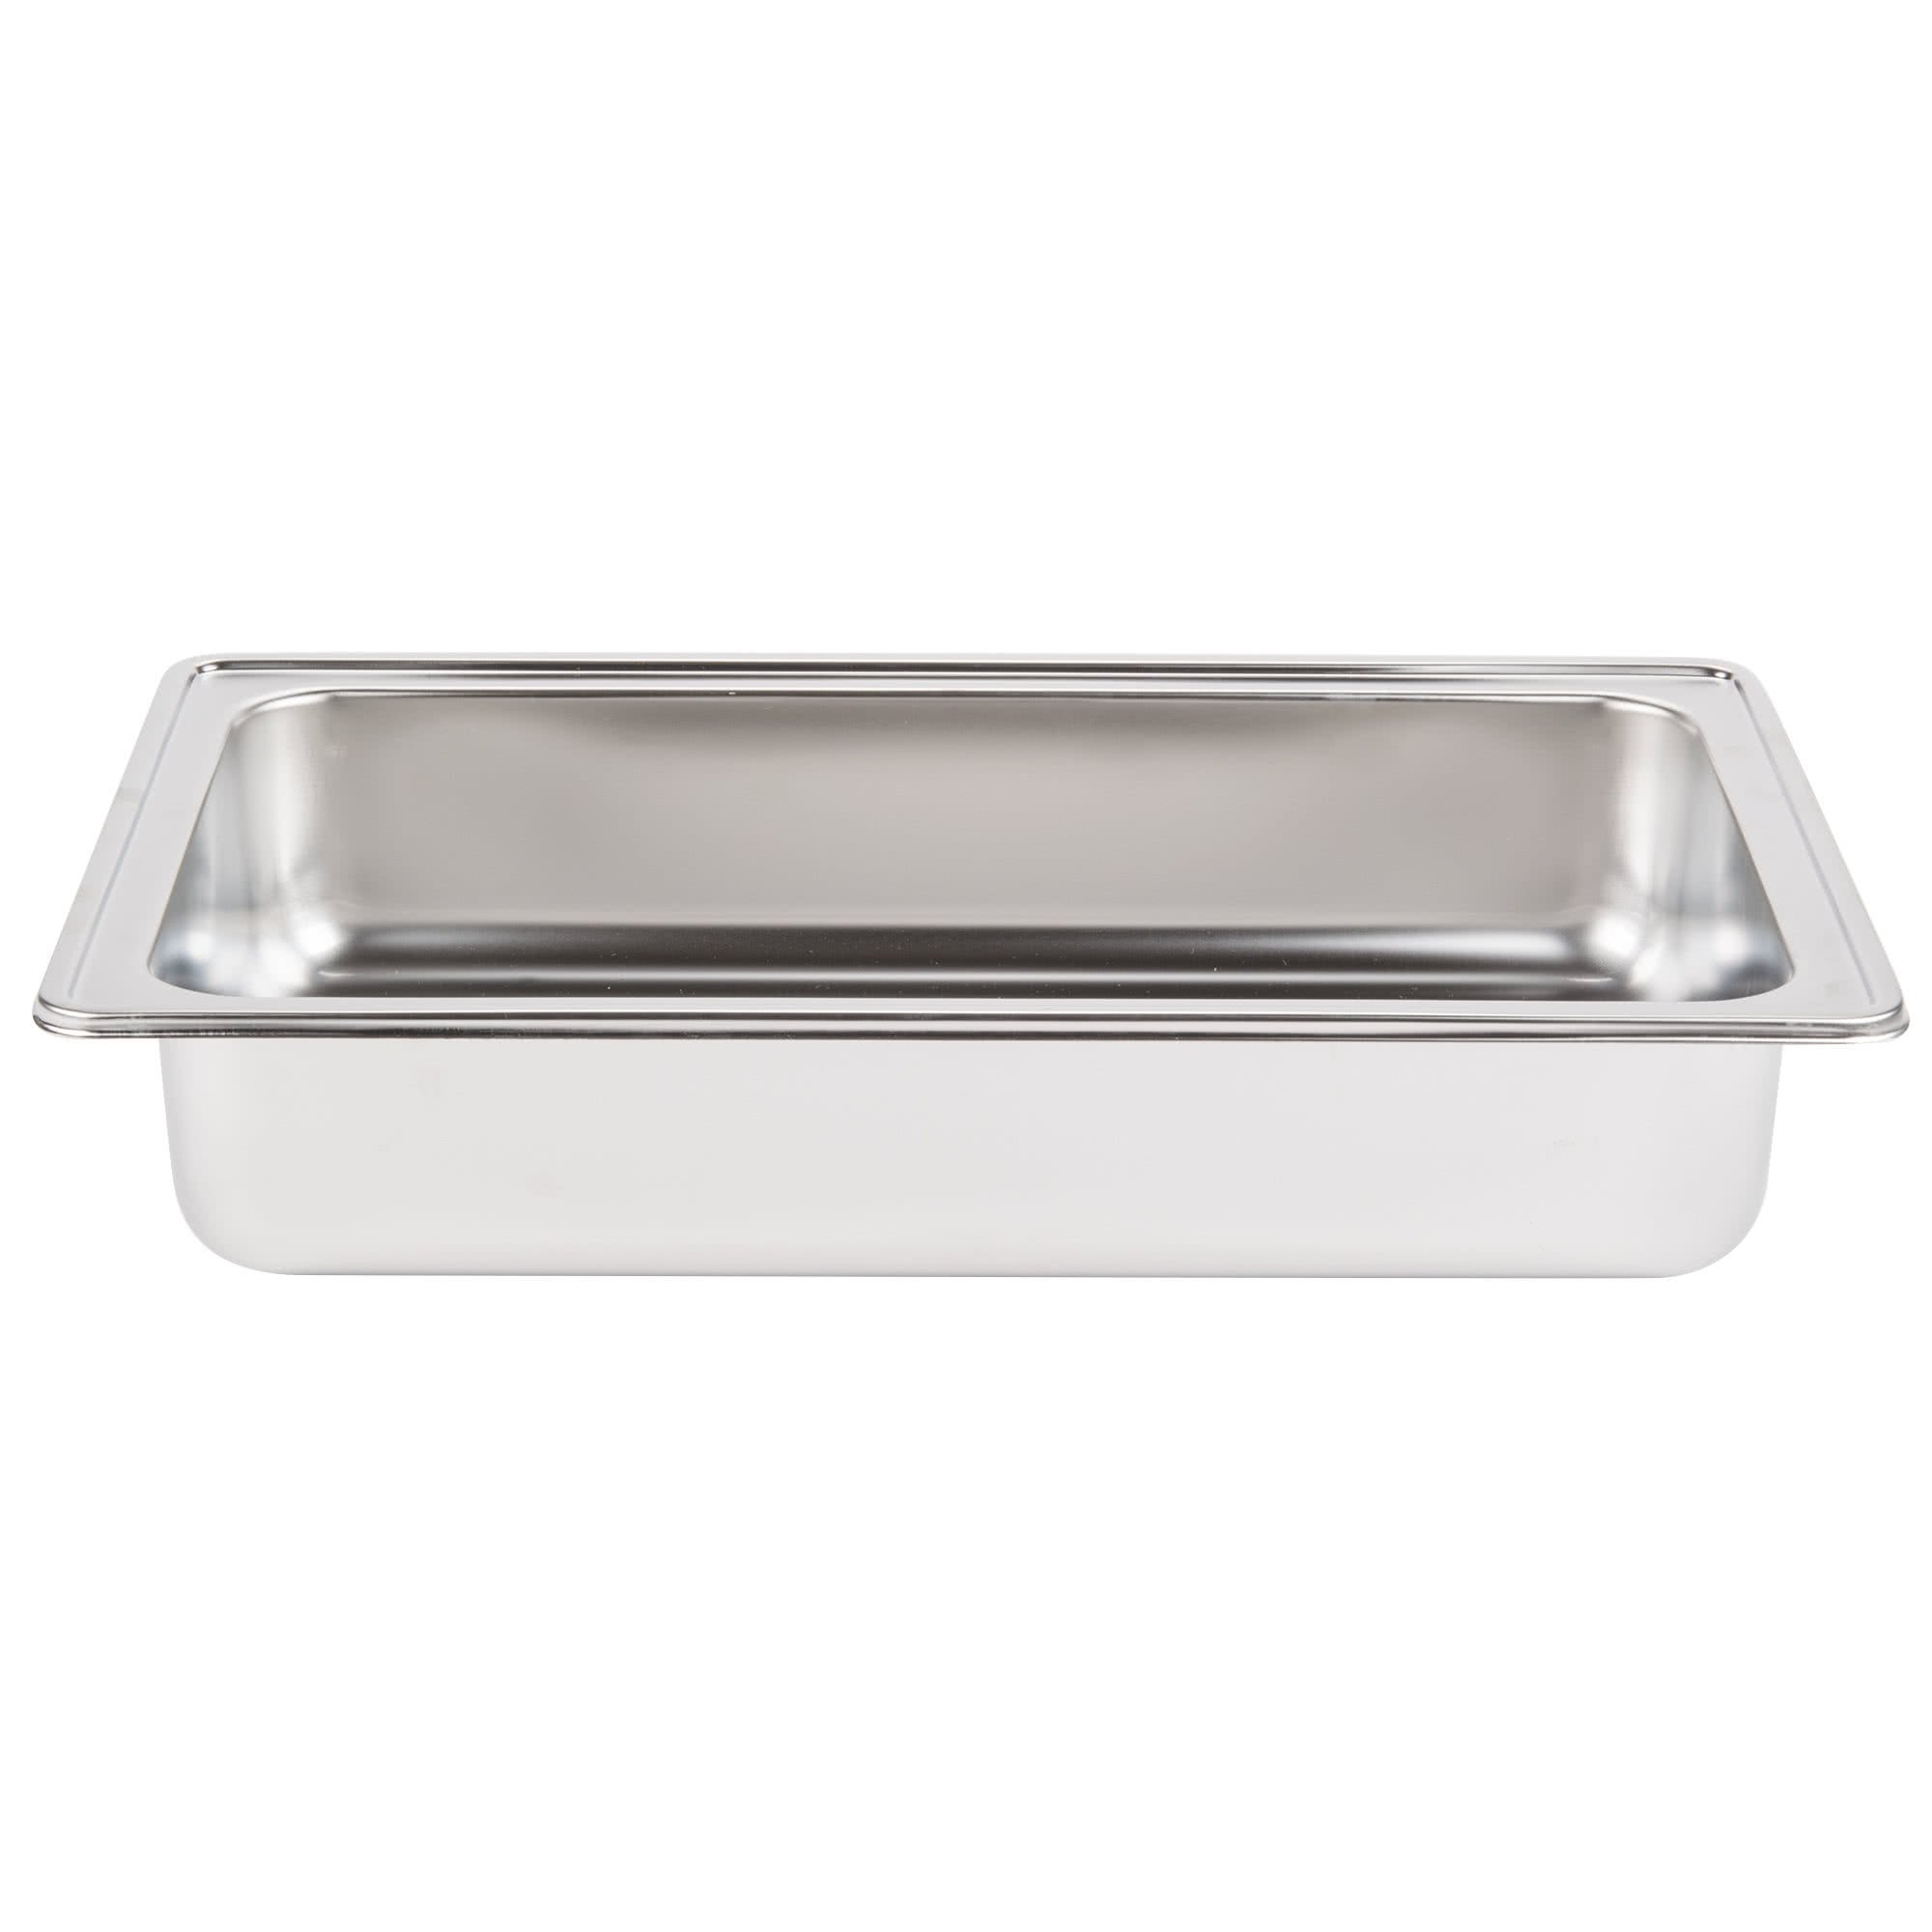 TableTop king 25562-1 Replacement Water Pan for 8 Qt. Roll Top Chafer